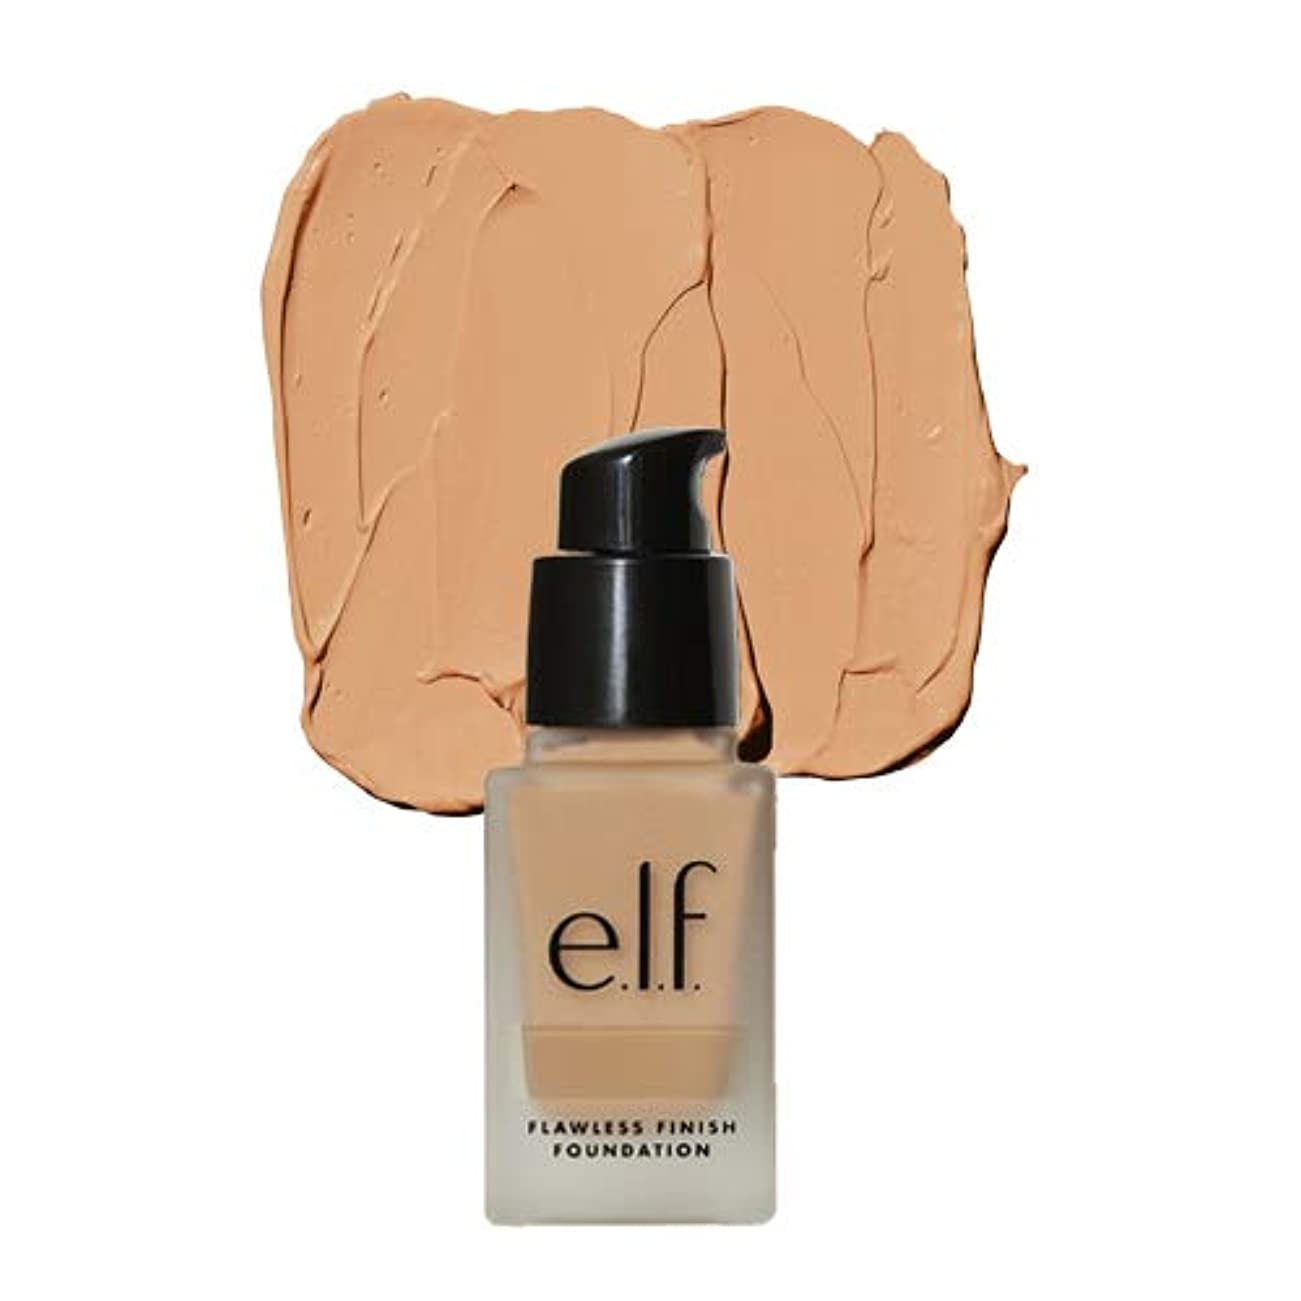 配る施しポスト印象派(3 Pack) e.l.f. Oil Free Flawless Finish Foundation - Toffee (並行輸入品)